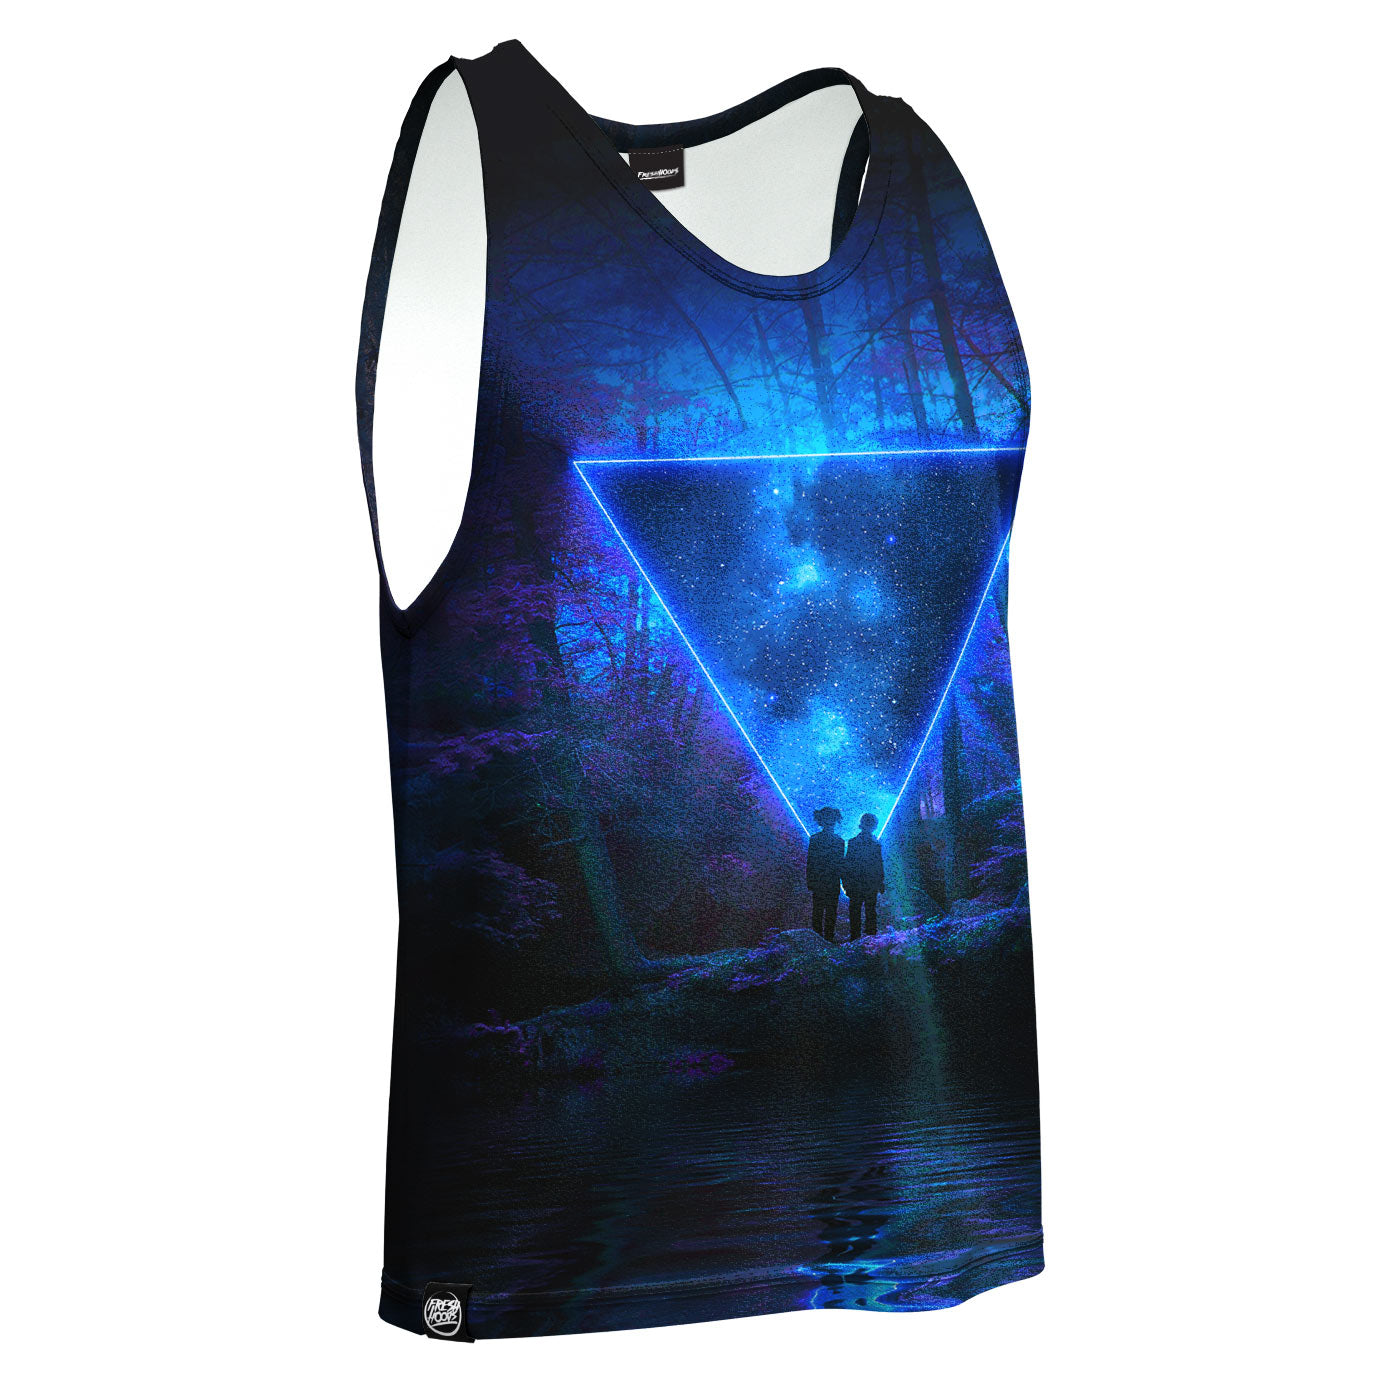 Craters Tank Top